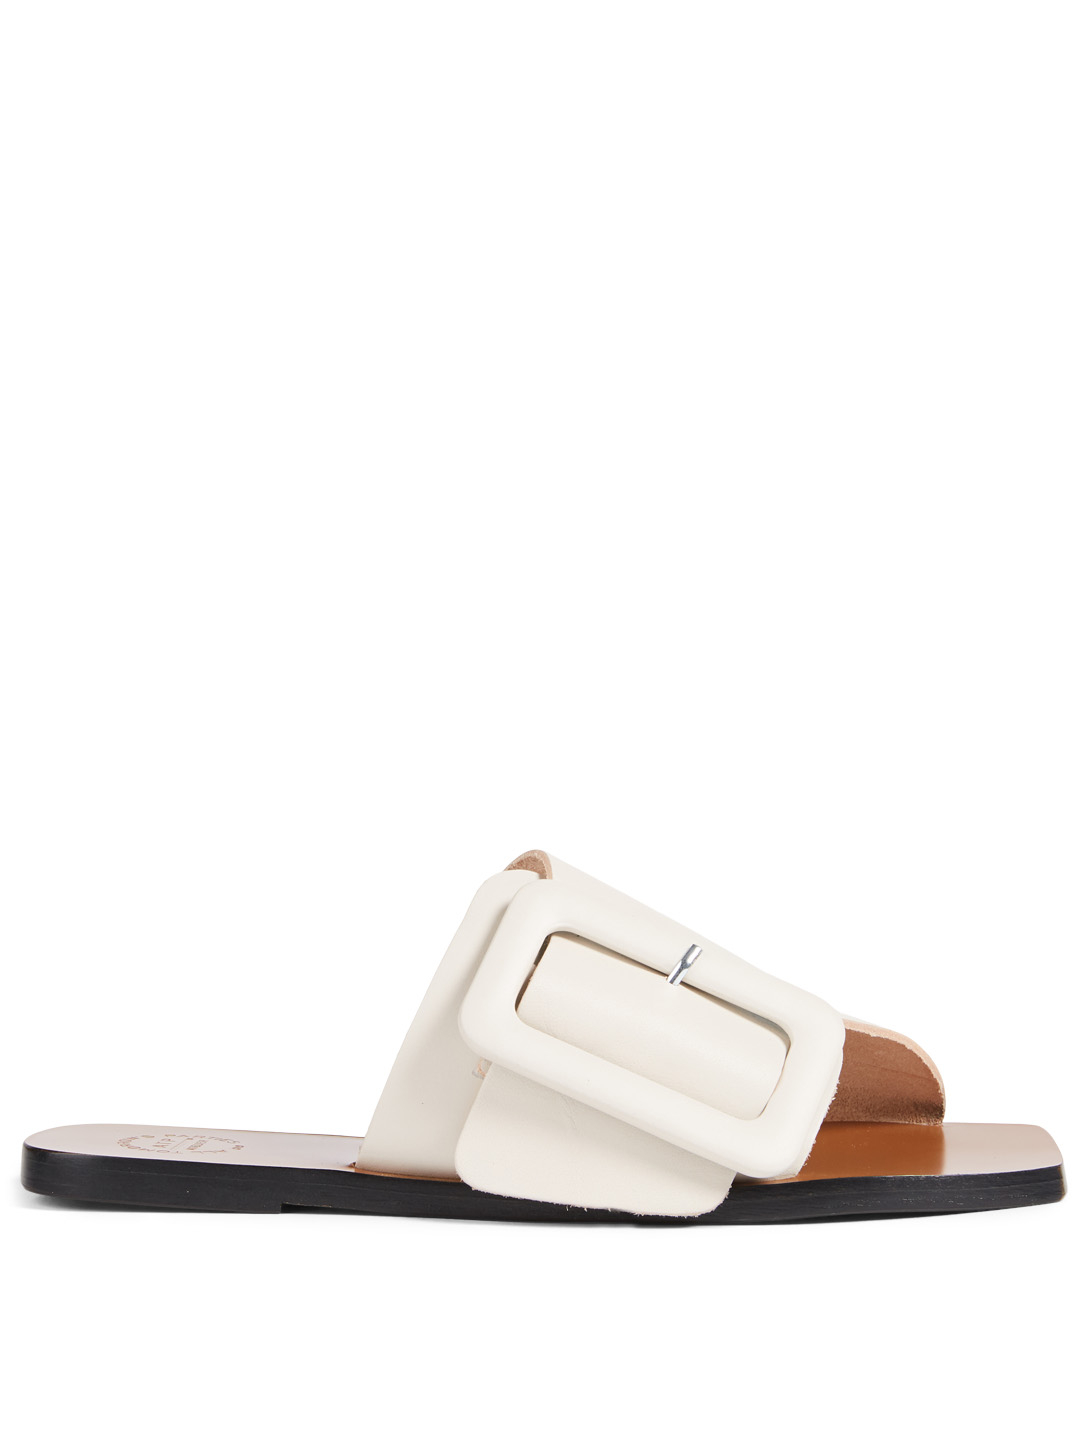 ATP ATELIER Ceci Leather Slide Sandals With Buckle Women's White